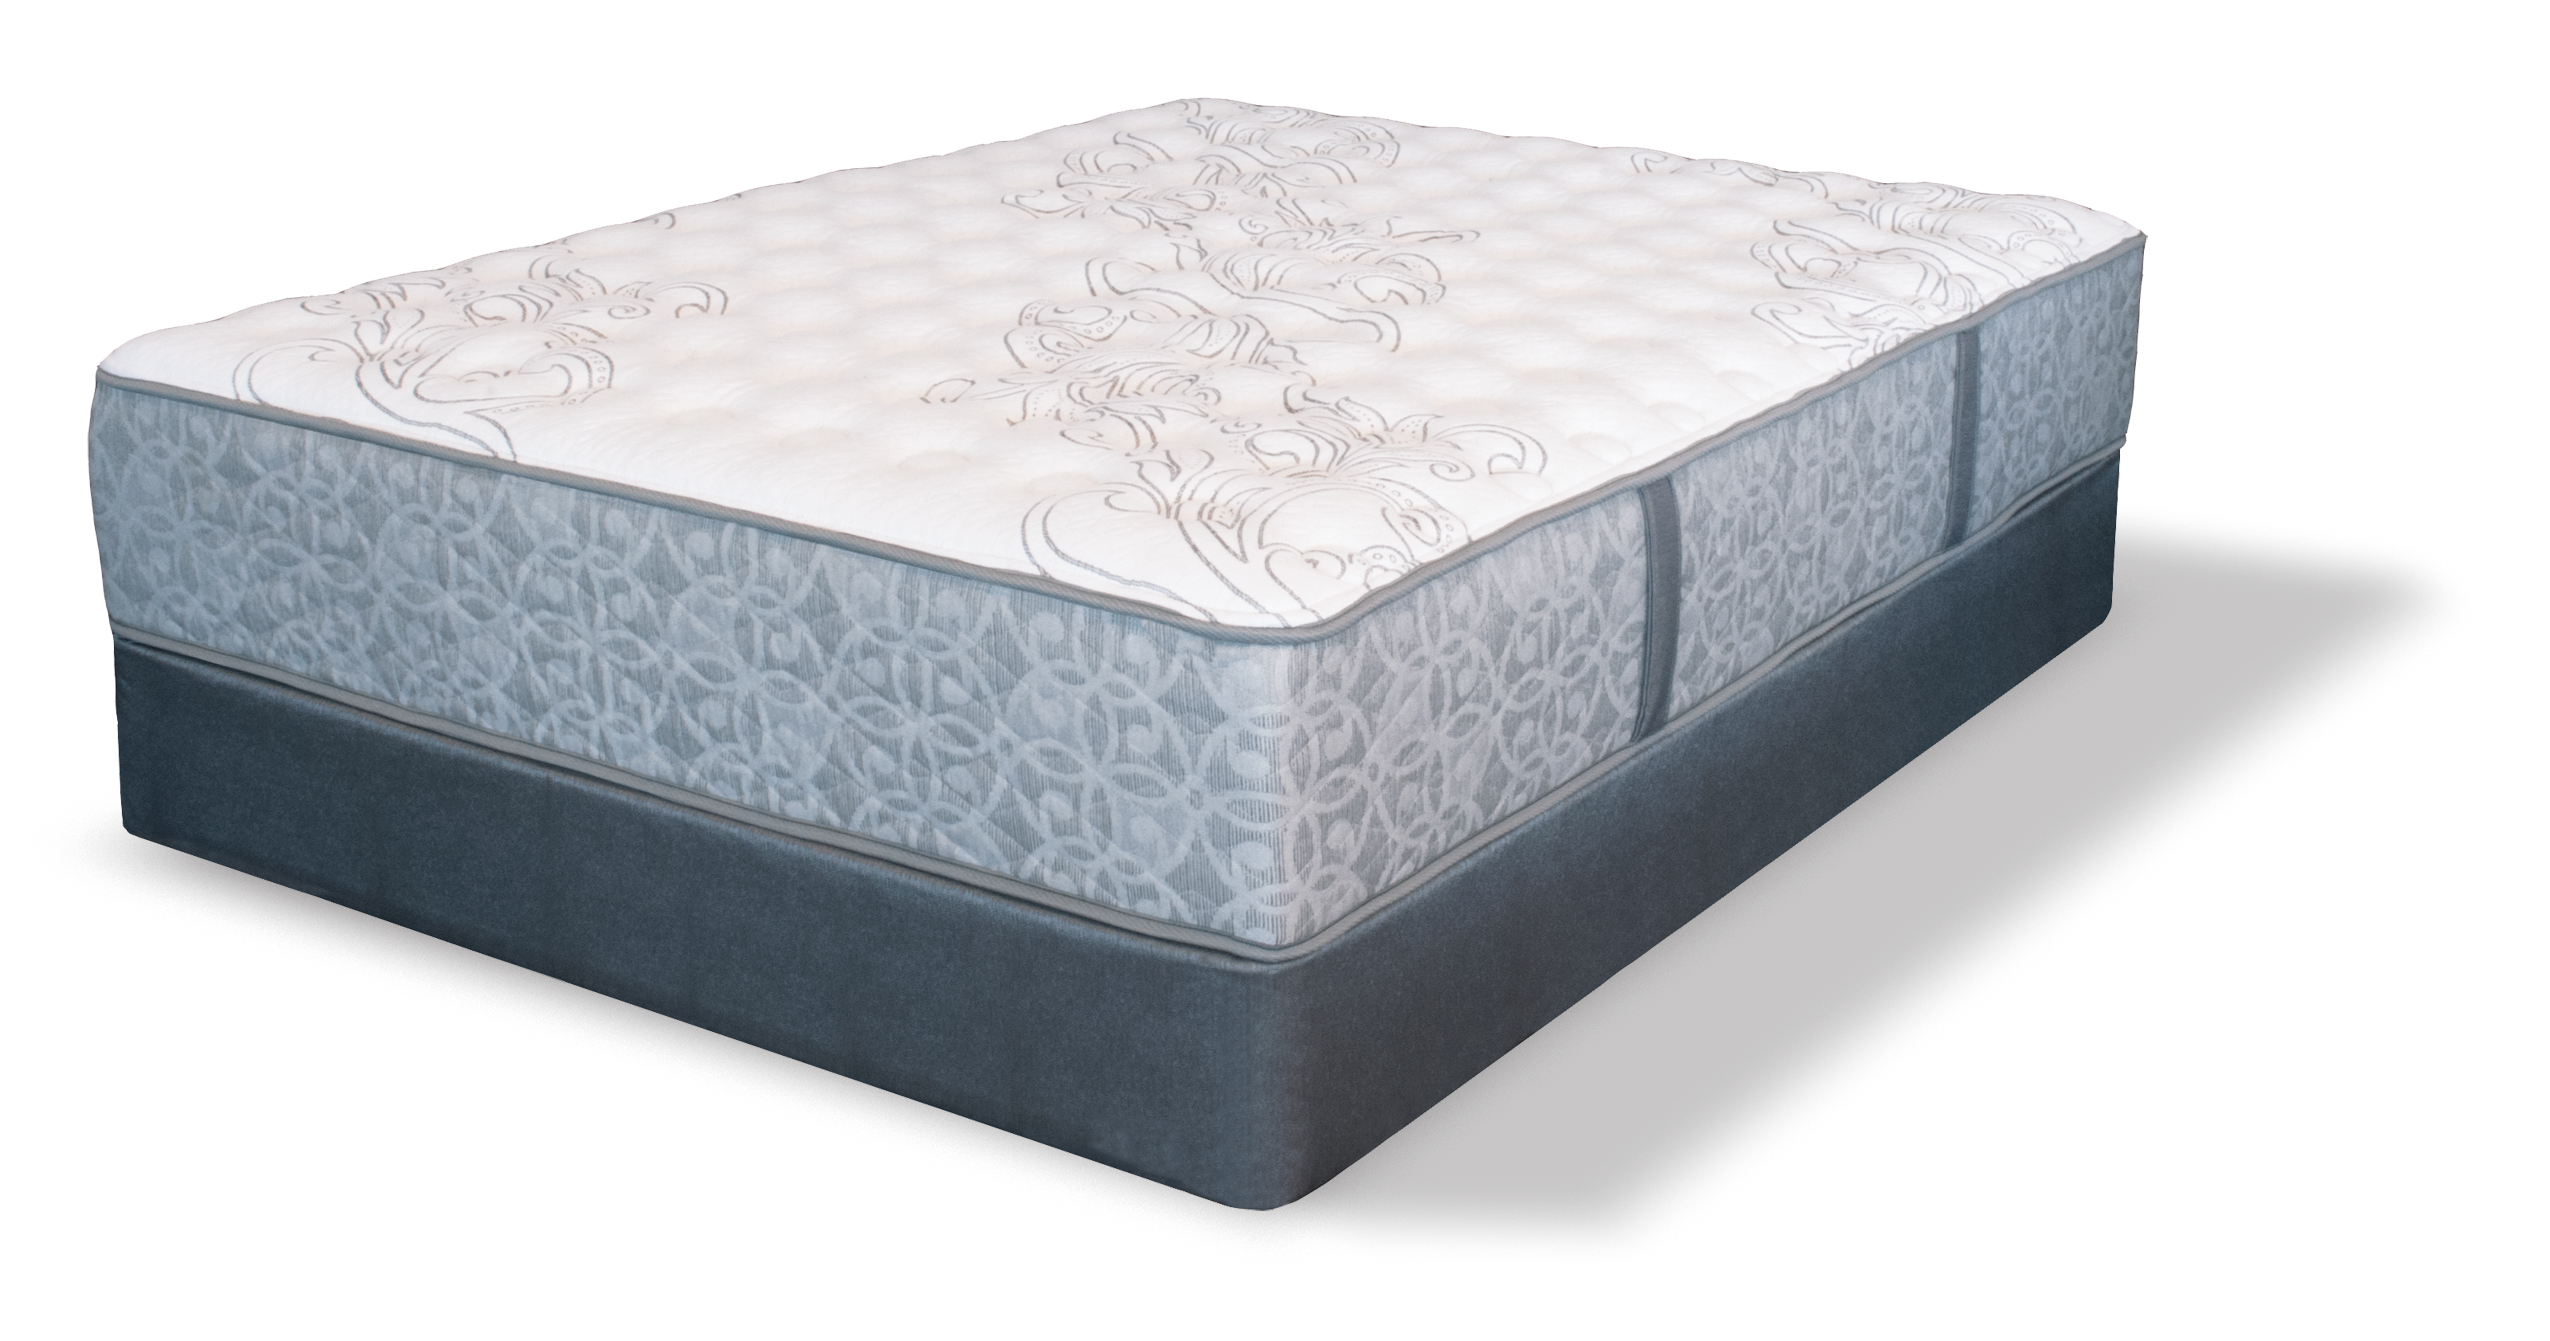 Firm Mattress For Sale Select Luxury Medium Firm 14inch Queensize Gel Memory Foam Mattress